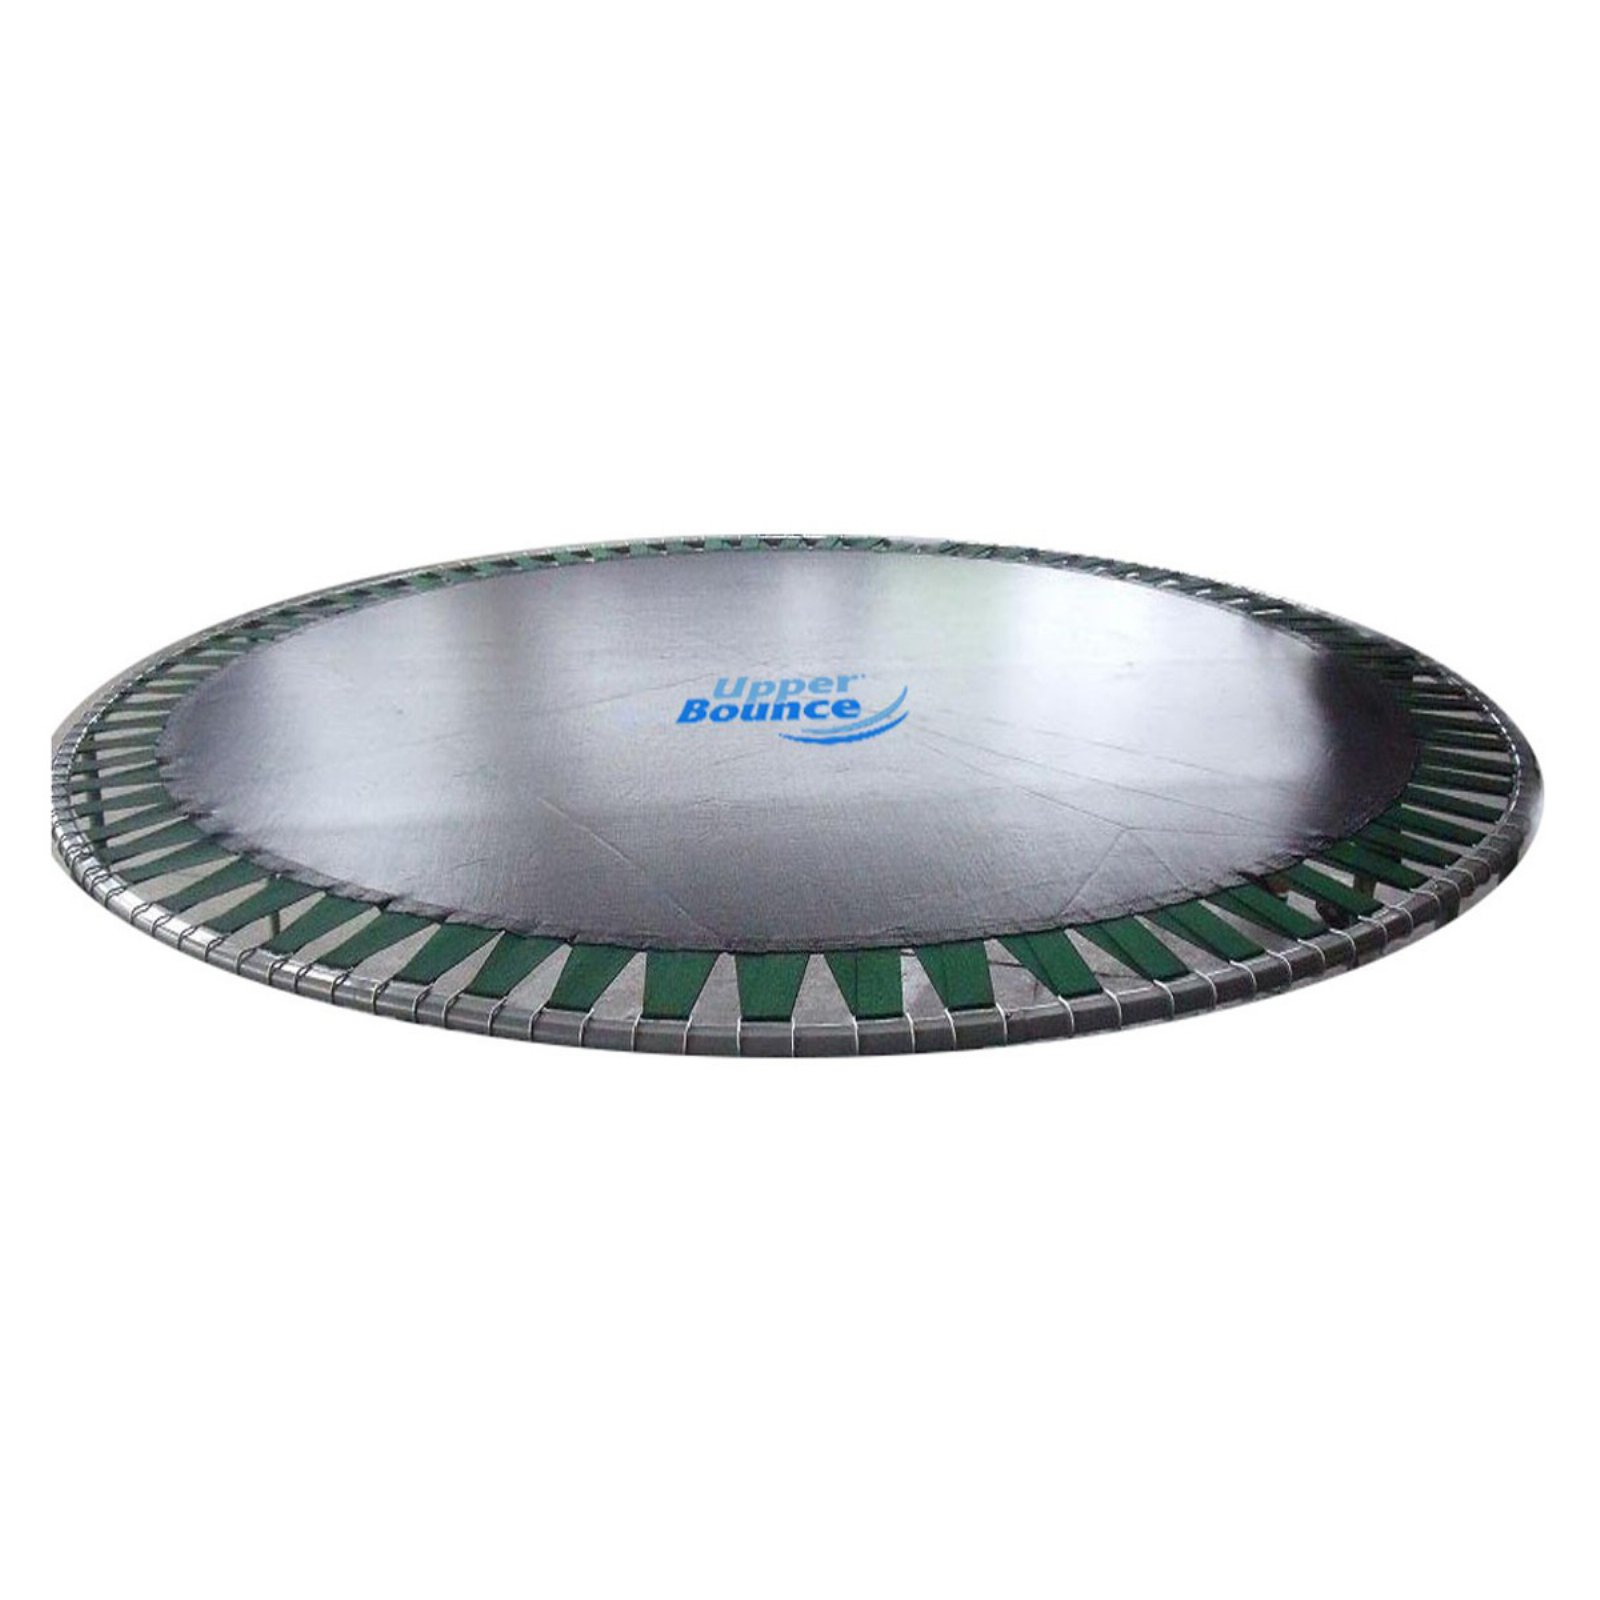 Upper Bounce 13 ft. Round Trampoline Band Jumping Mat